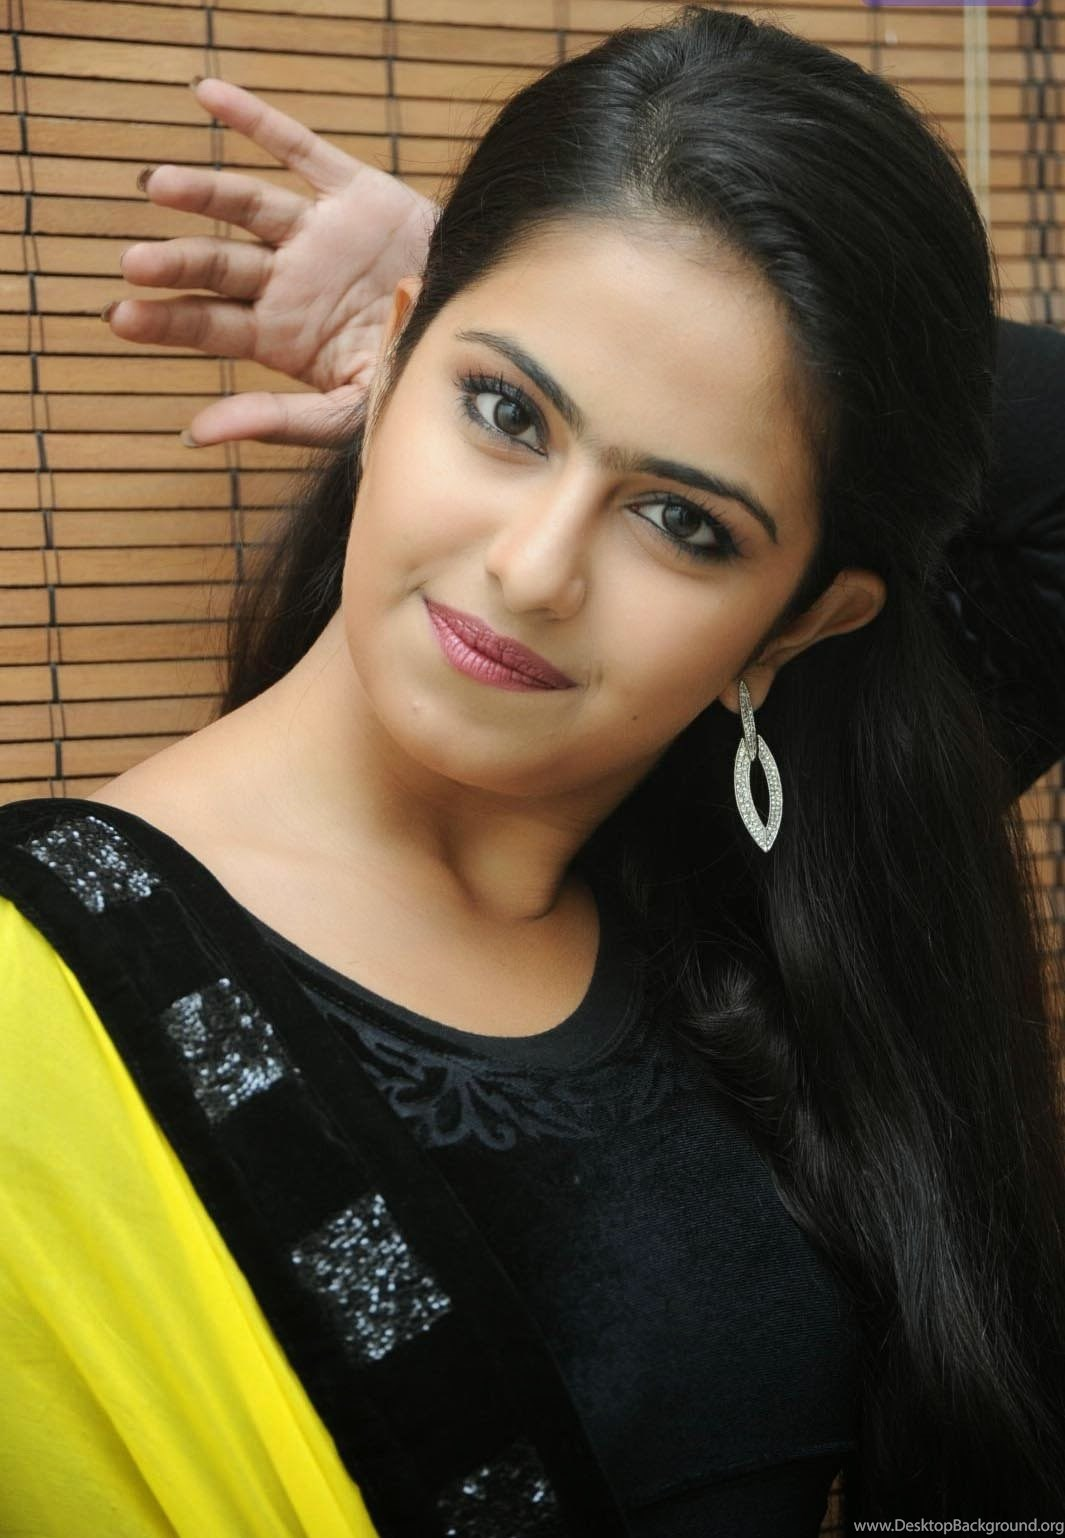 manasa new hot photos,manasa telugu actress new photoshoot